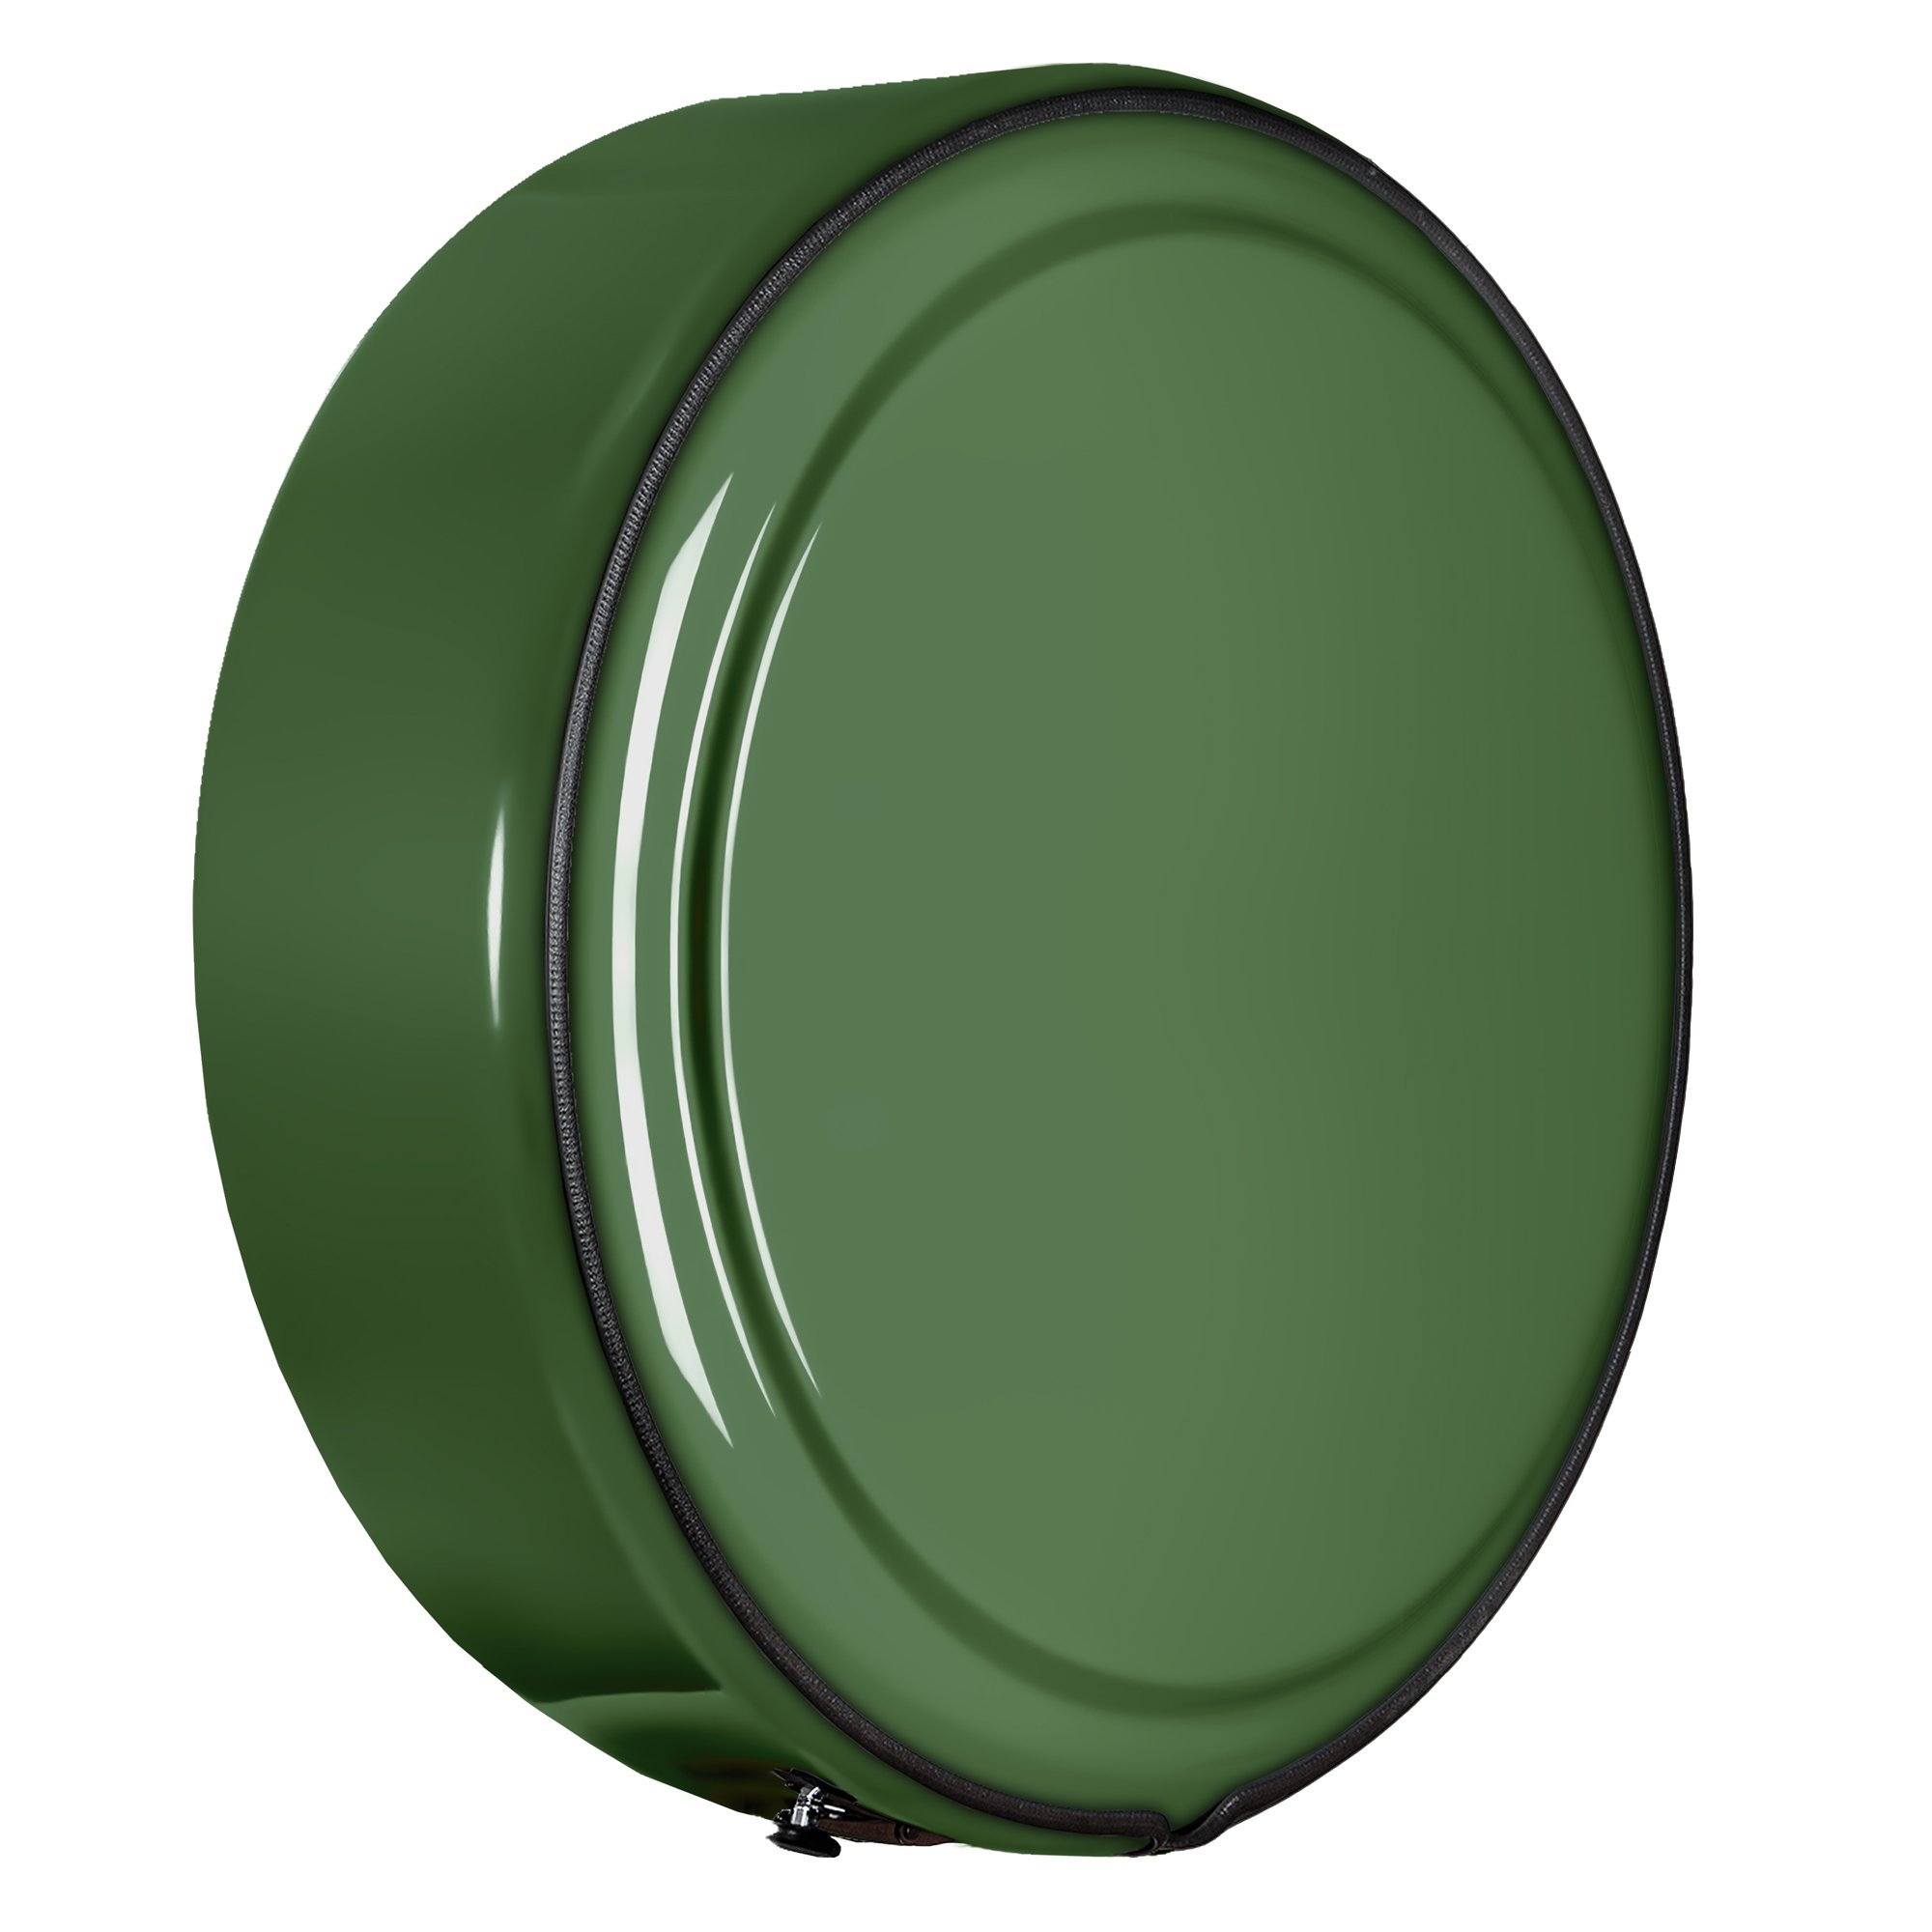 Jeep Wrangler JK - 29'' Color Matched MasterSeries Hard Tire Cover - Sarge Green by Boomerang (Image #3)